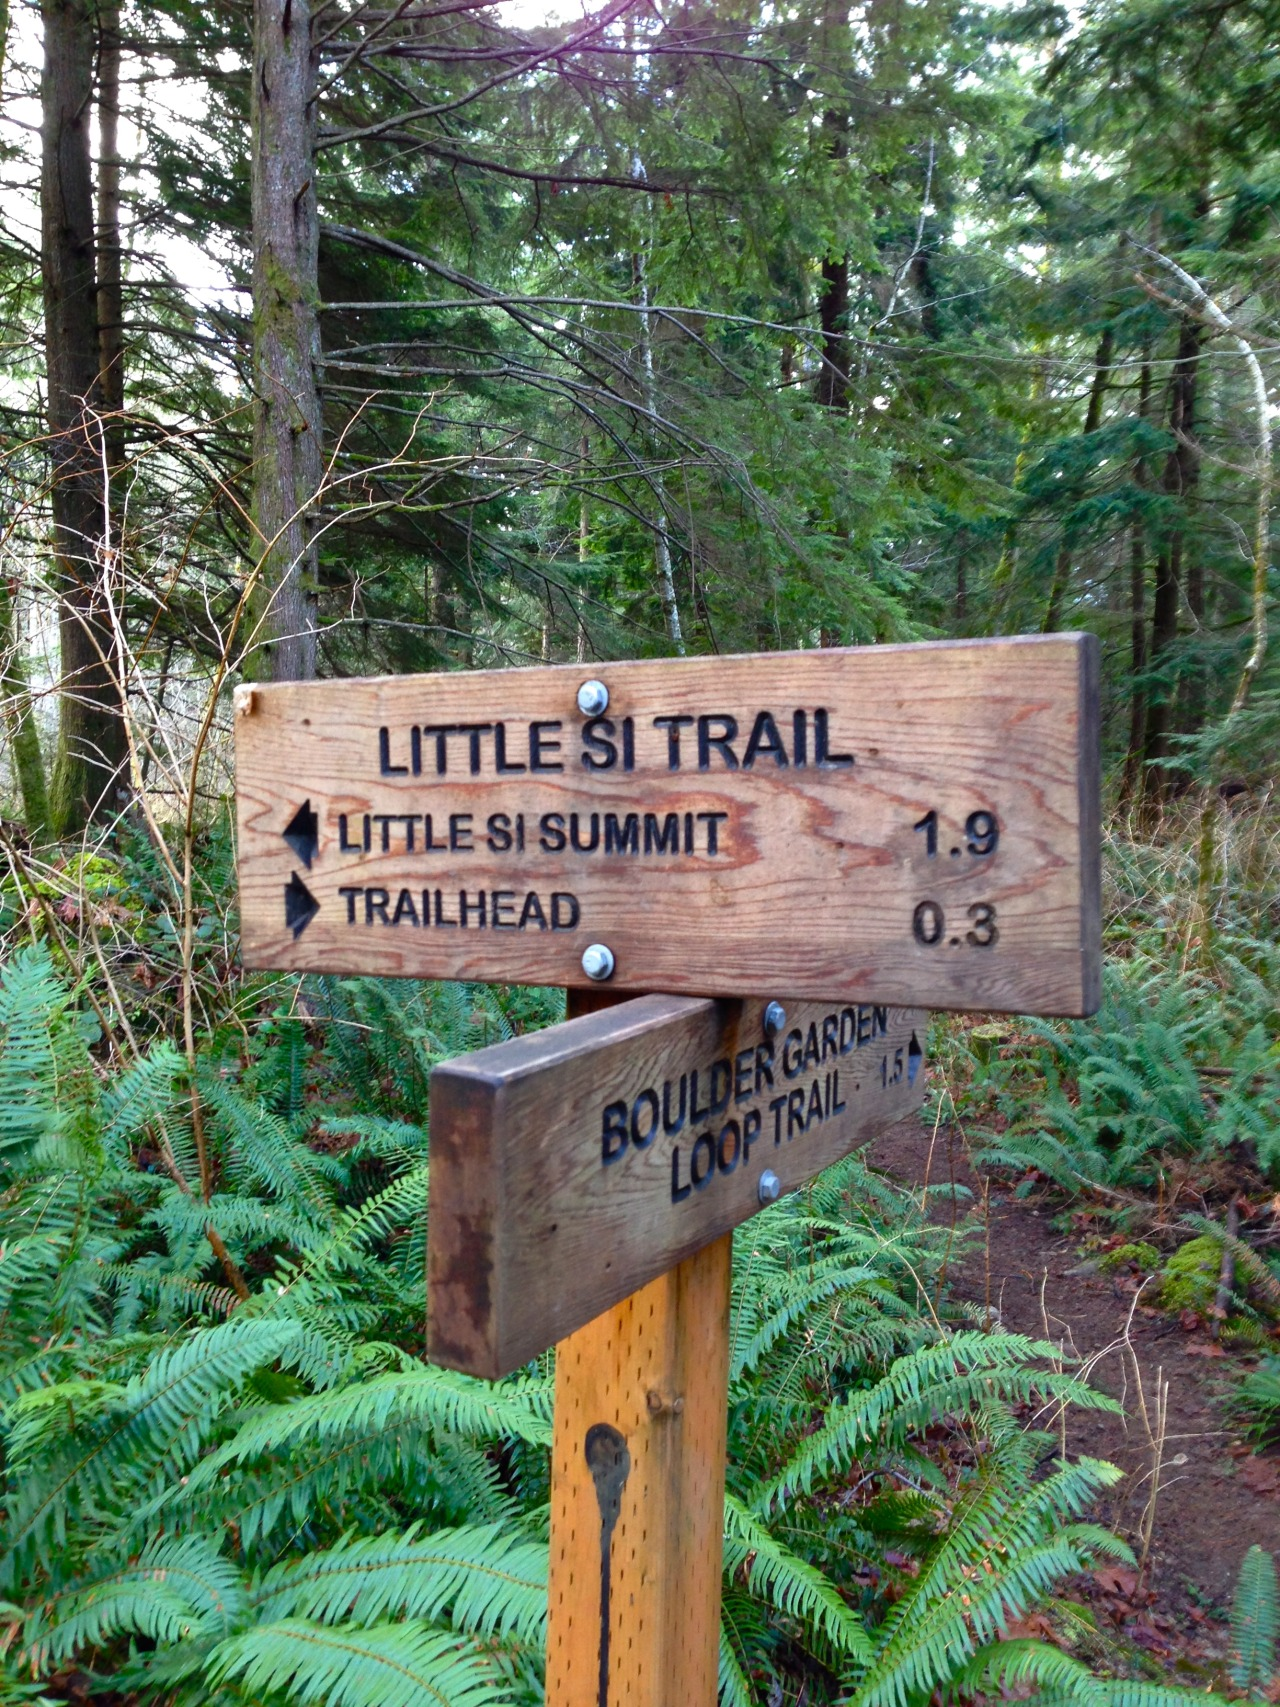 Hiked the Little Si trail today! It was super scenic and a lot less severe than the Mount Si trail.